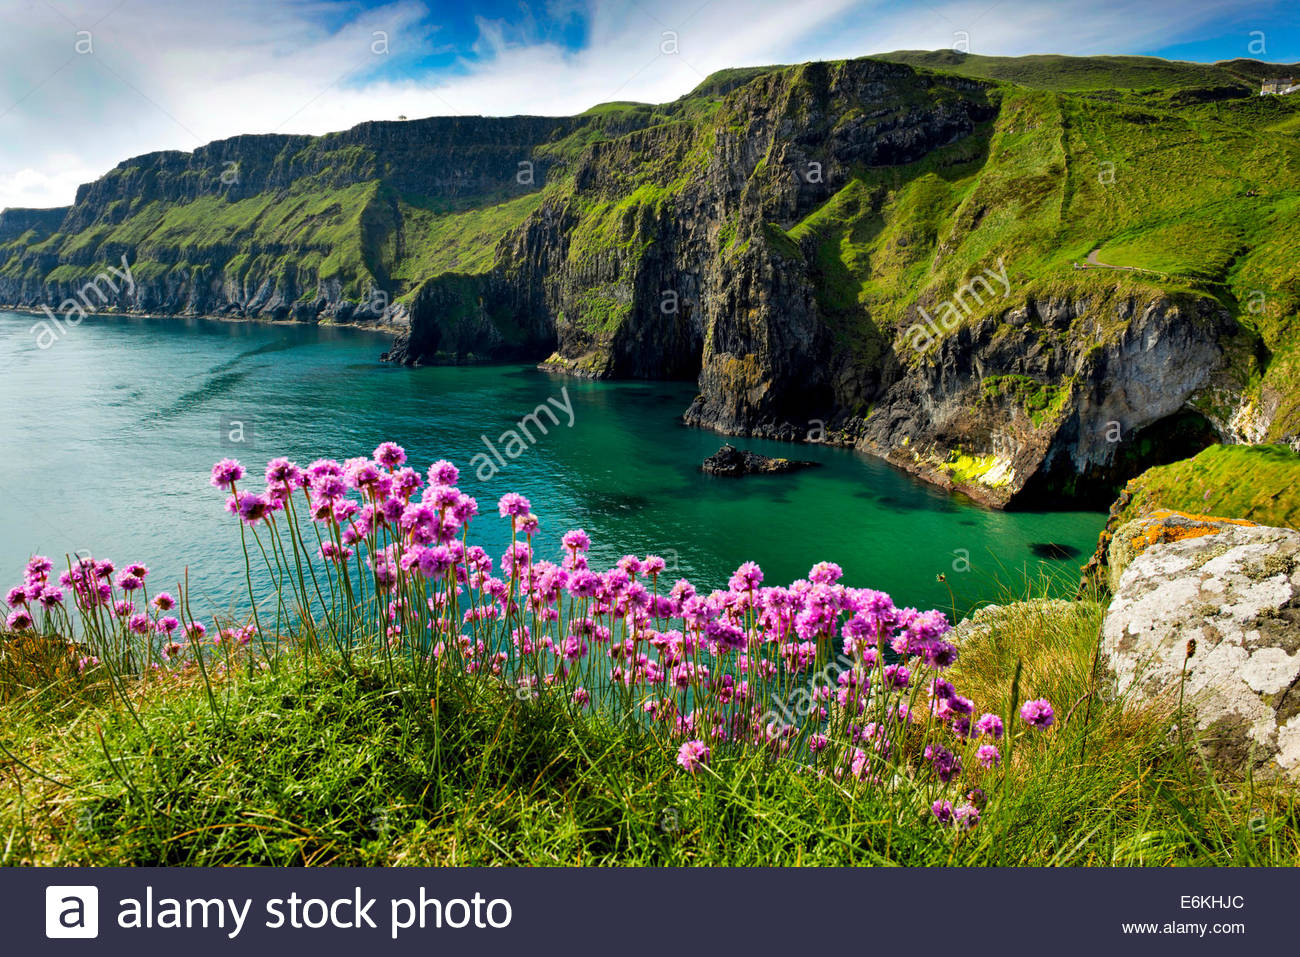 Sea Pinks at Carrick-a-rede, Co. Antrim, Northern Ireland, Stock Photo